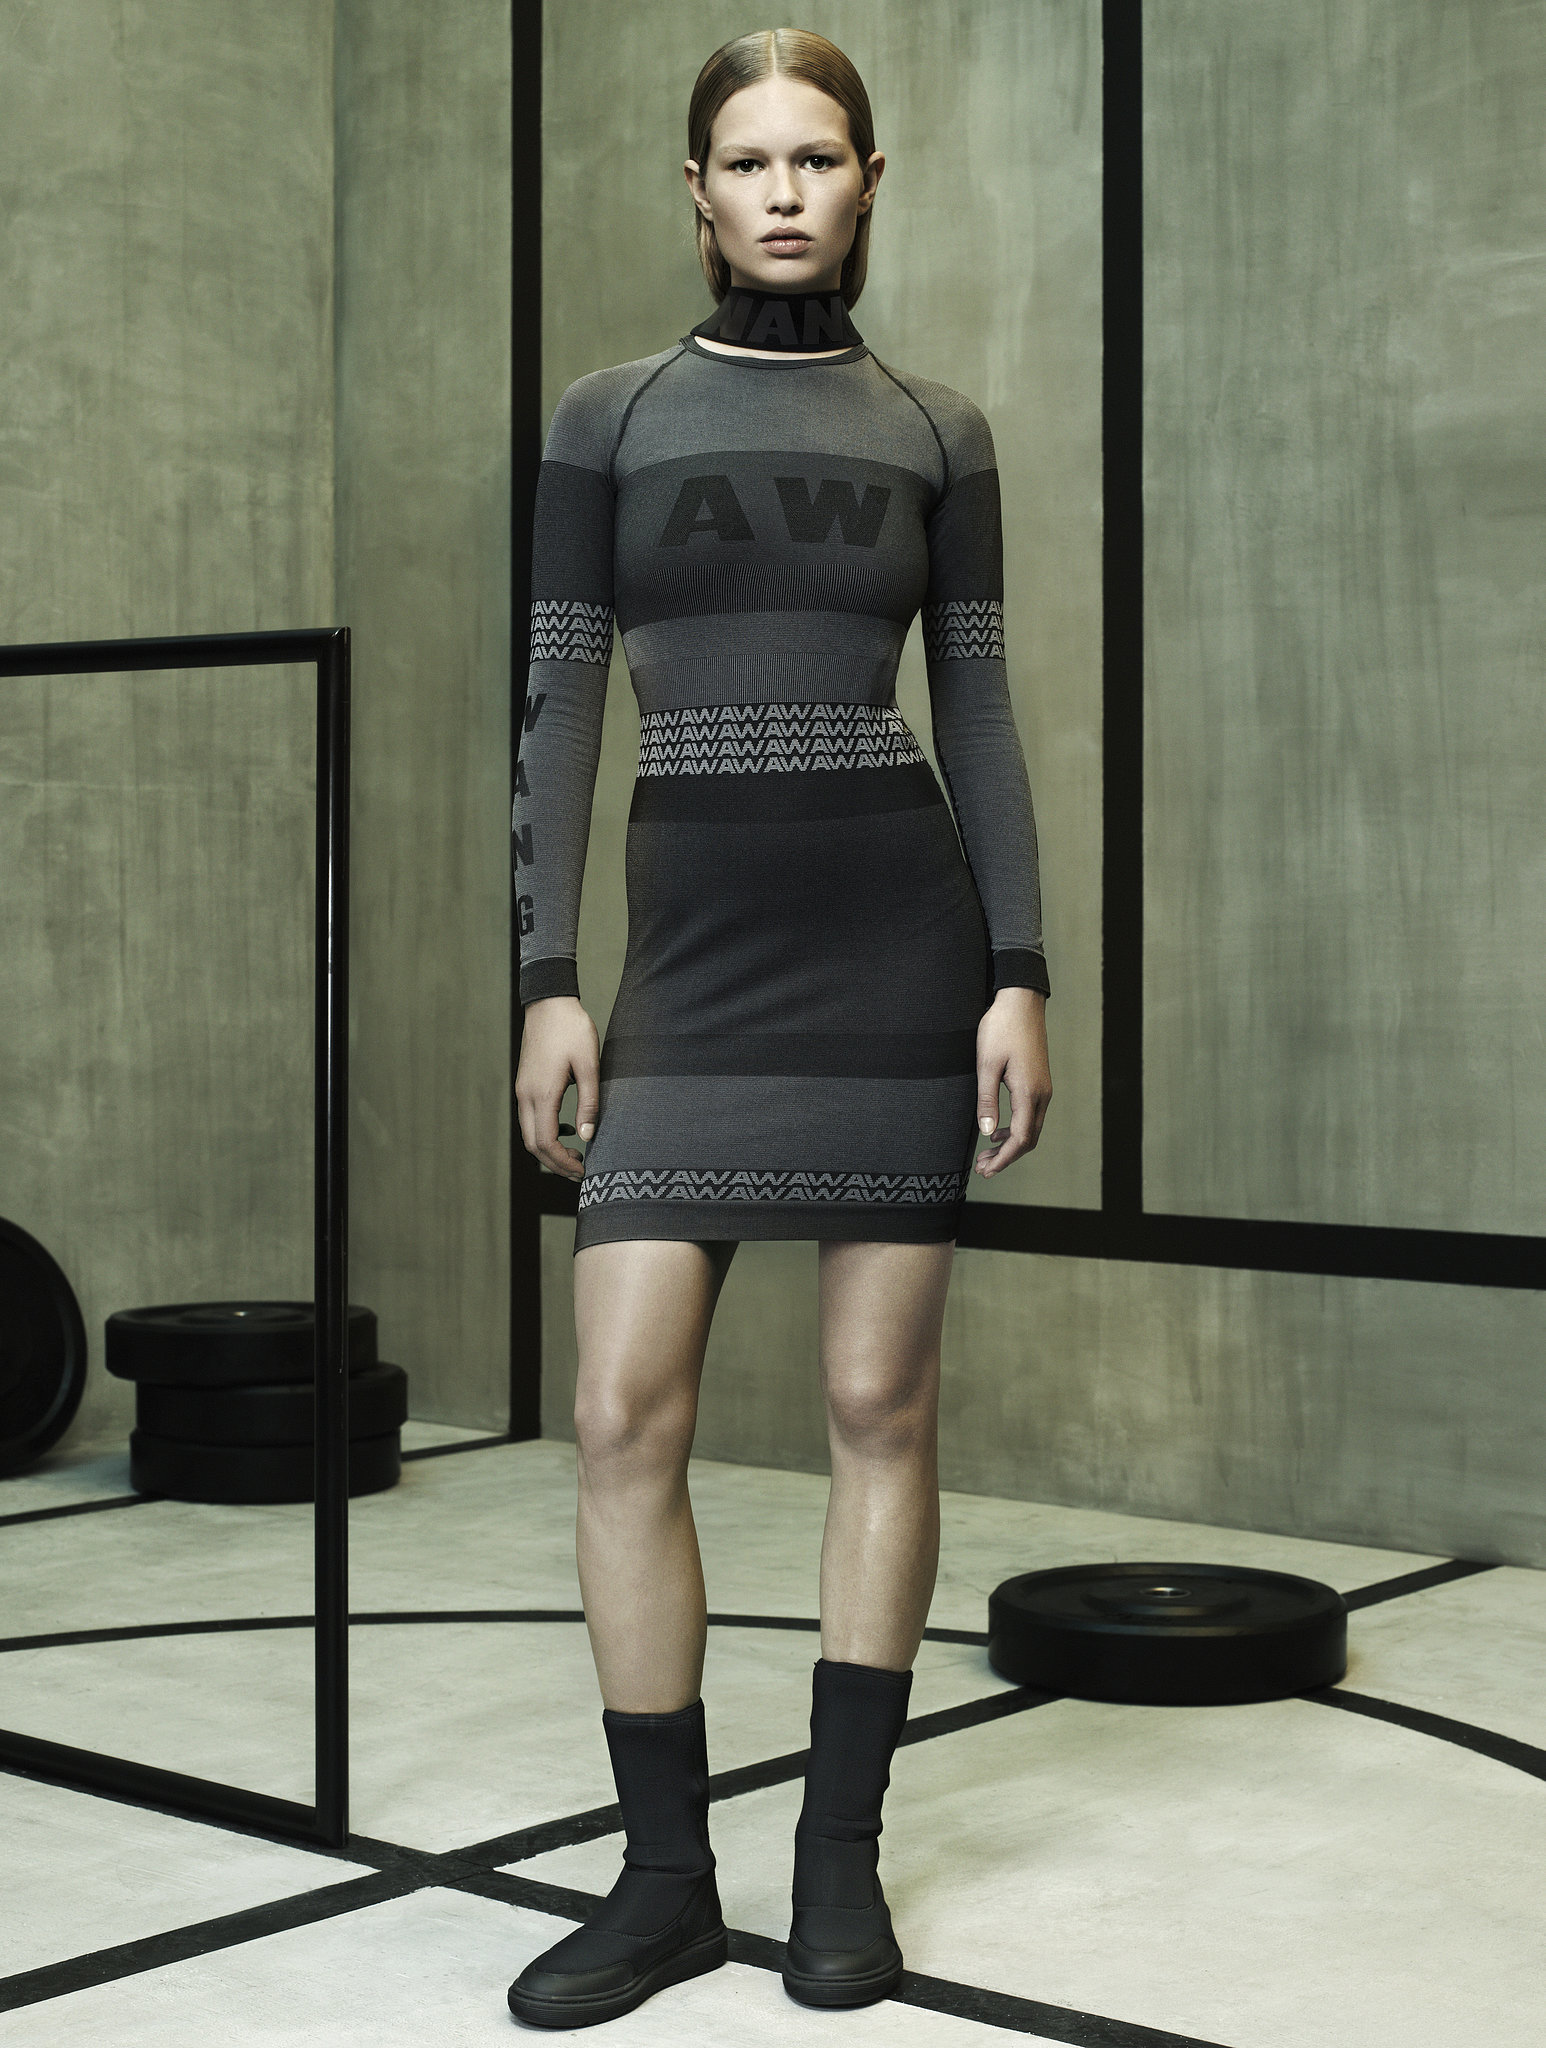 Shop Alexander Wang x H&M Today. November 6, by Randy Miller. First Published: April 13, Beauty by POPSUGAR Must Have POPSUGAR at Kohl's Collection Beauty by POPSUGAR Fashion .